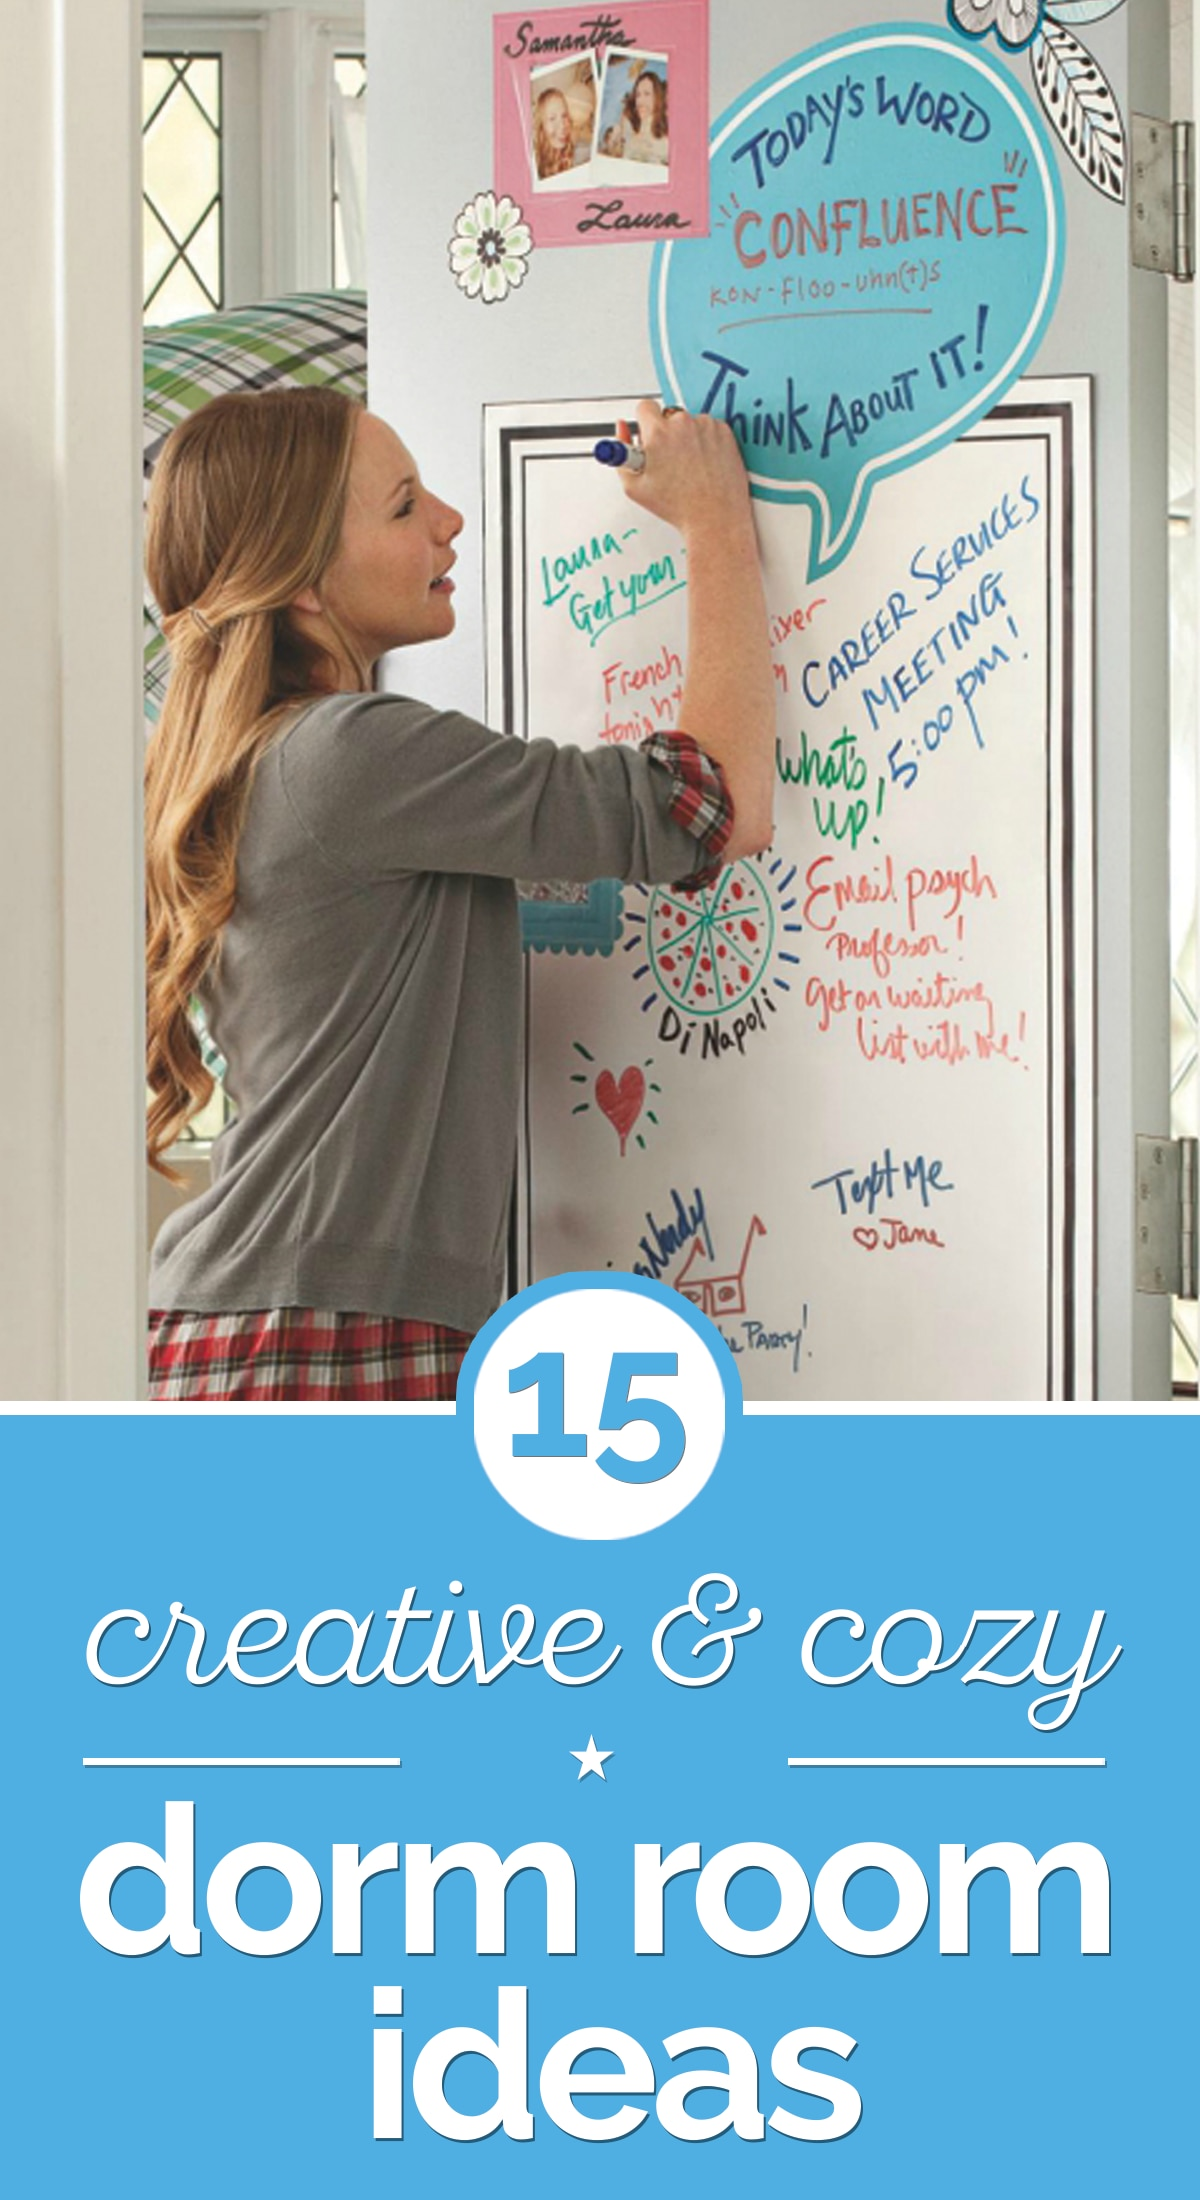 15 Creative & Cozy Dorm Room Ideas | thegoodstuff